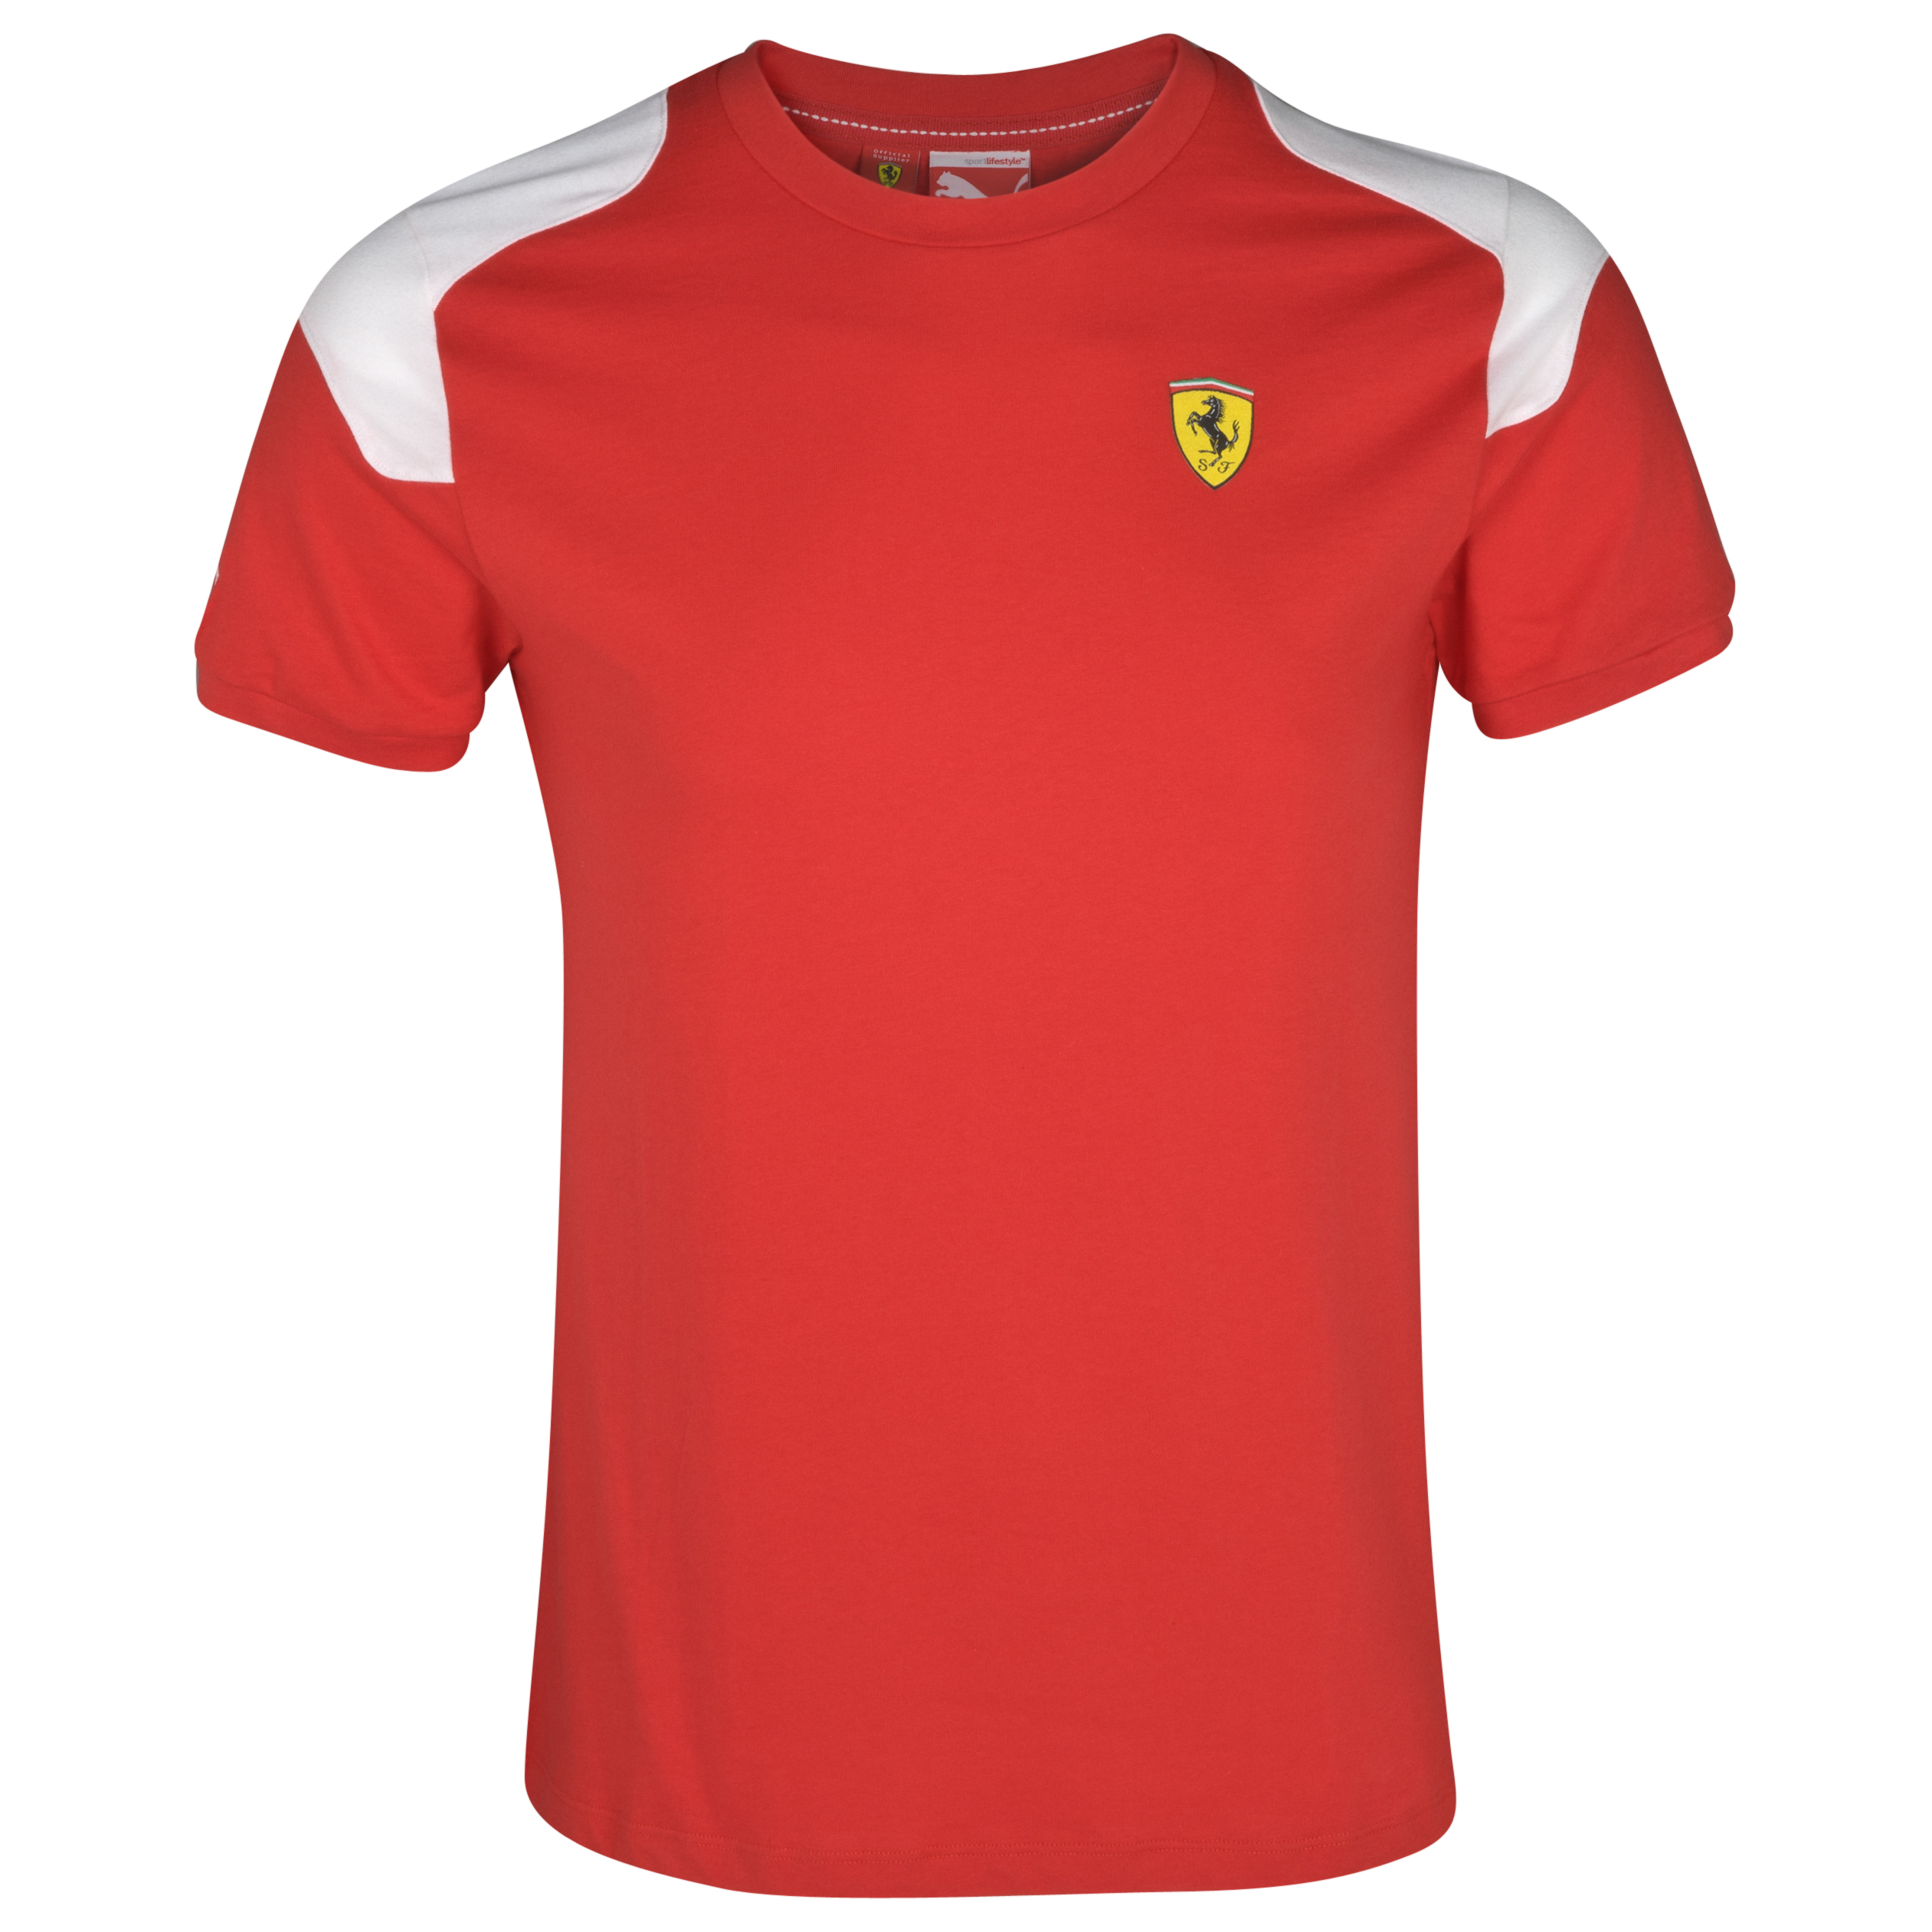 Scuderia Ferrari 2012 T-Shirt - Rosso Corsa